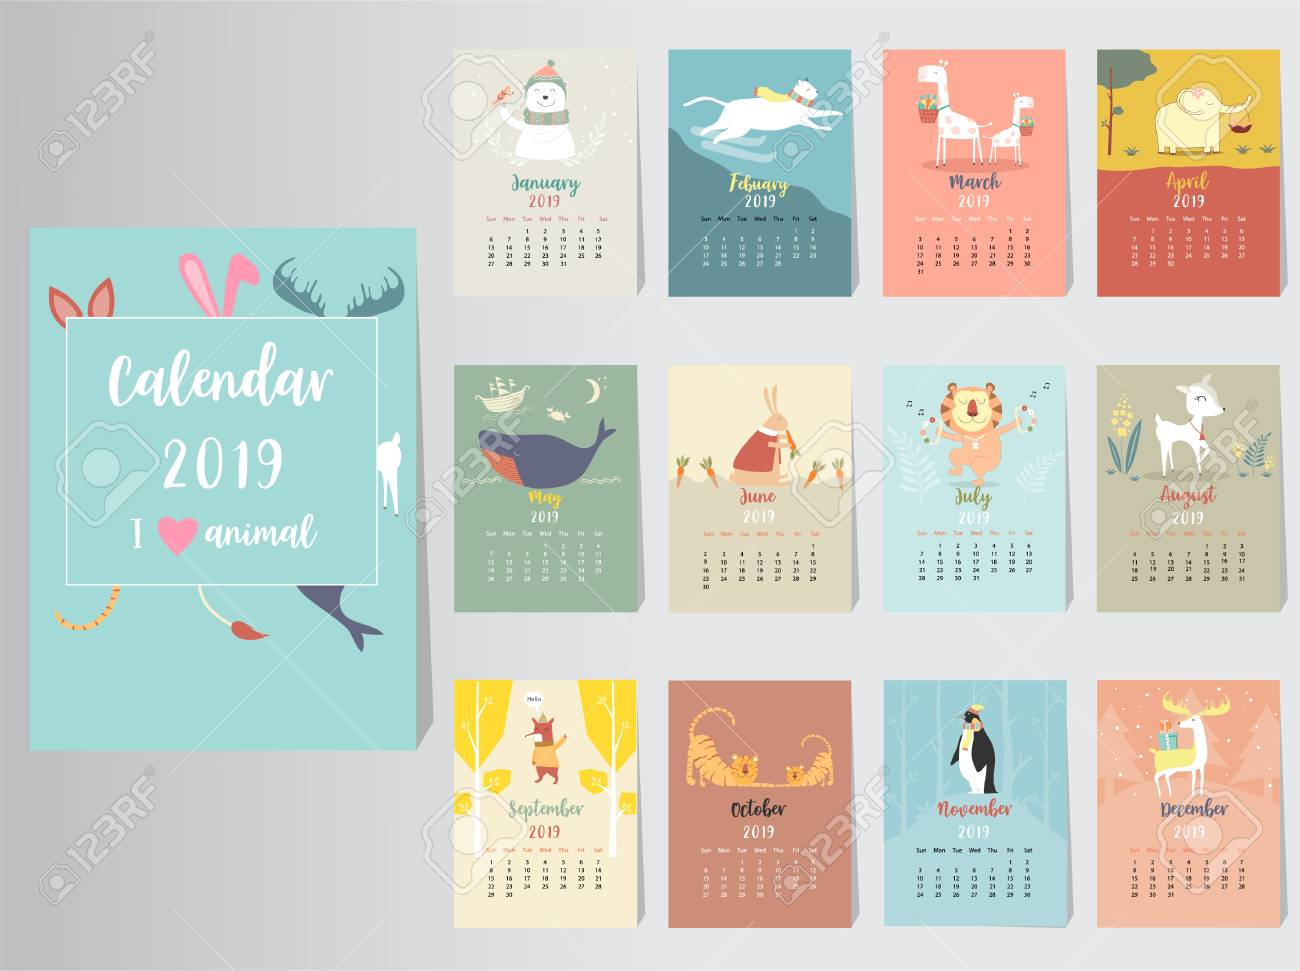 Cool Calendars 2019 Cute Animal Calendar 2019 Design,The Year Of The Pig Monthly